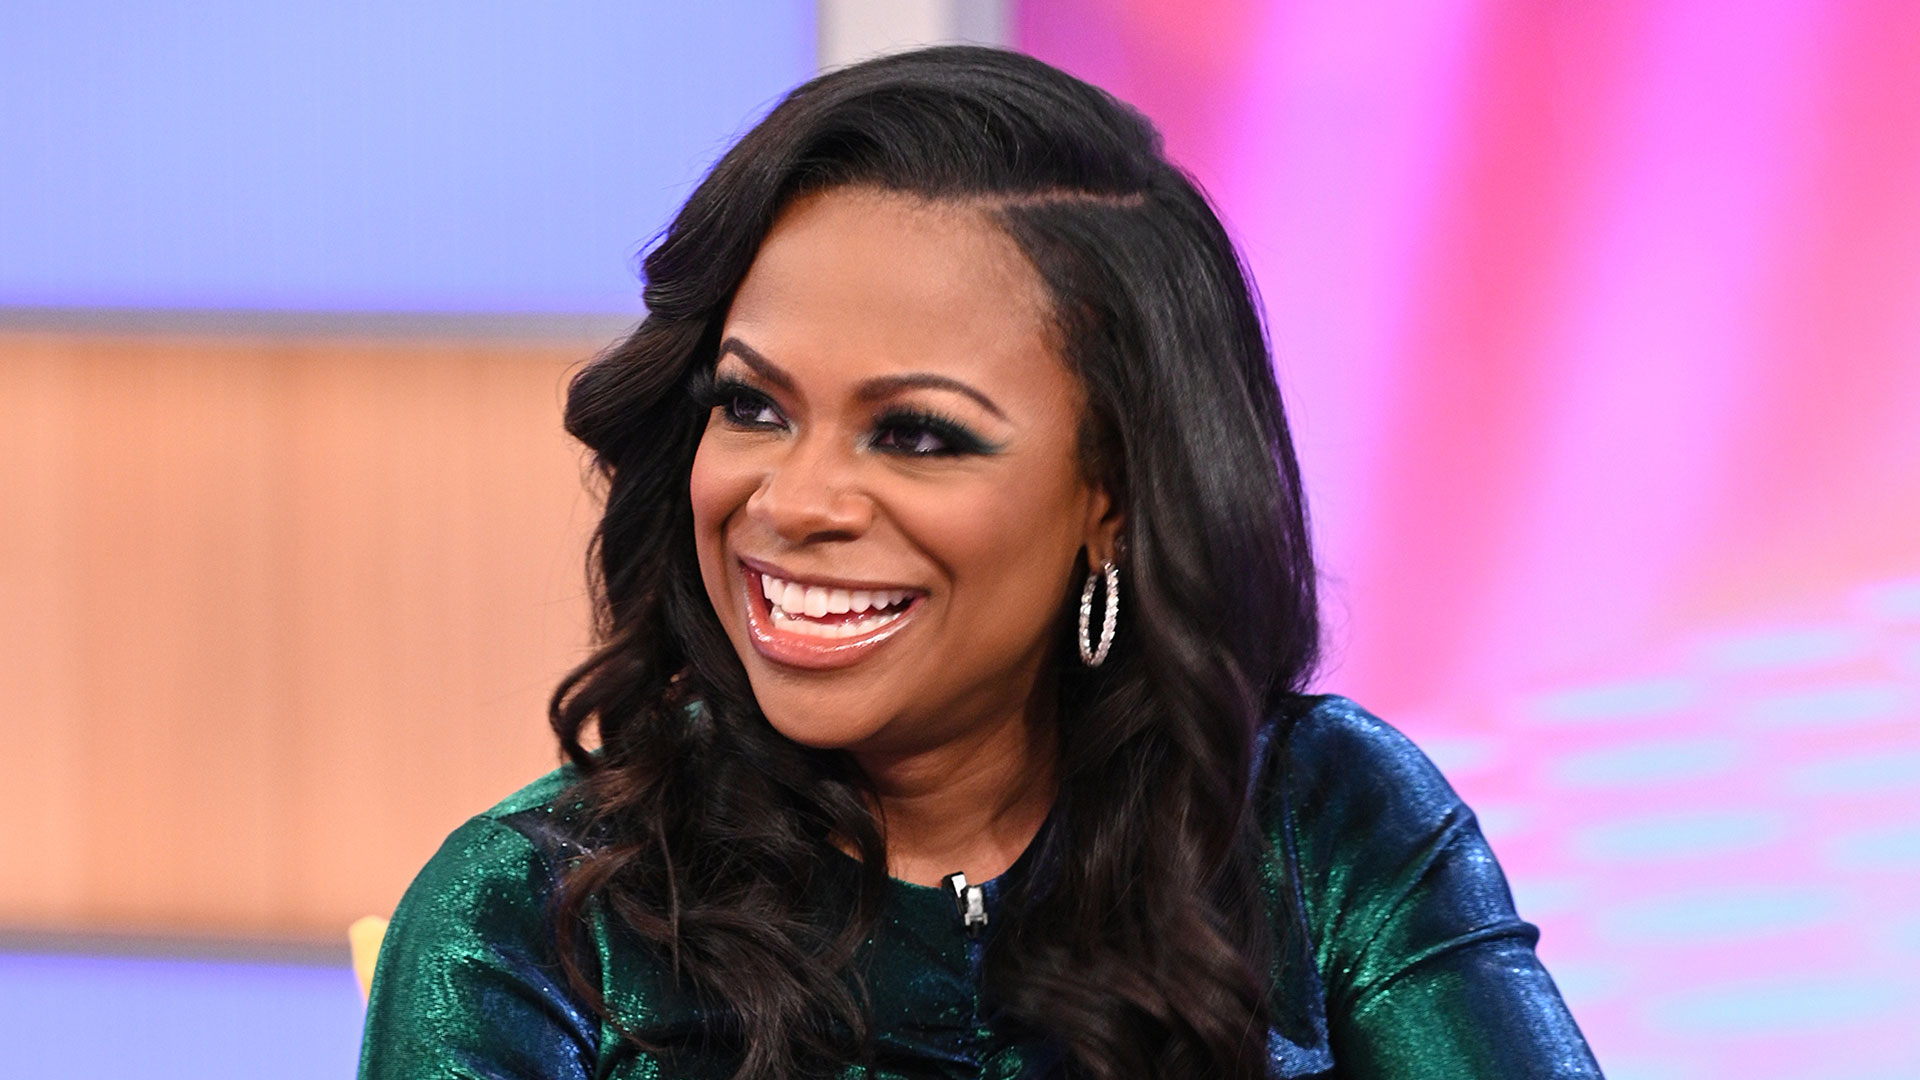 kandi-burruss-talks-about-getting-snatched-see-her-video